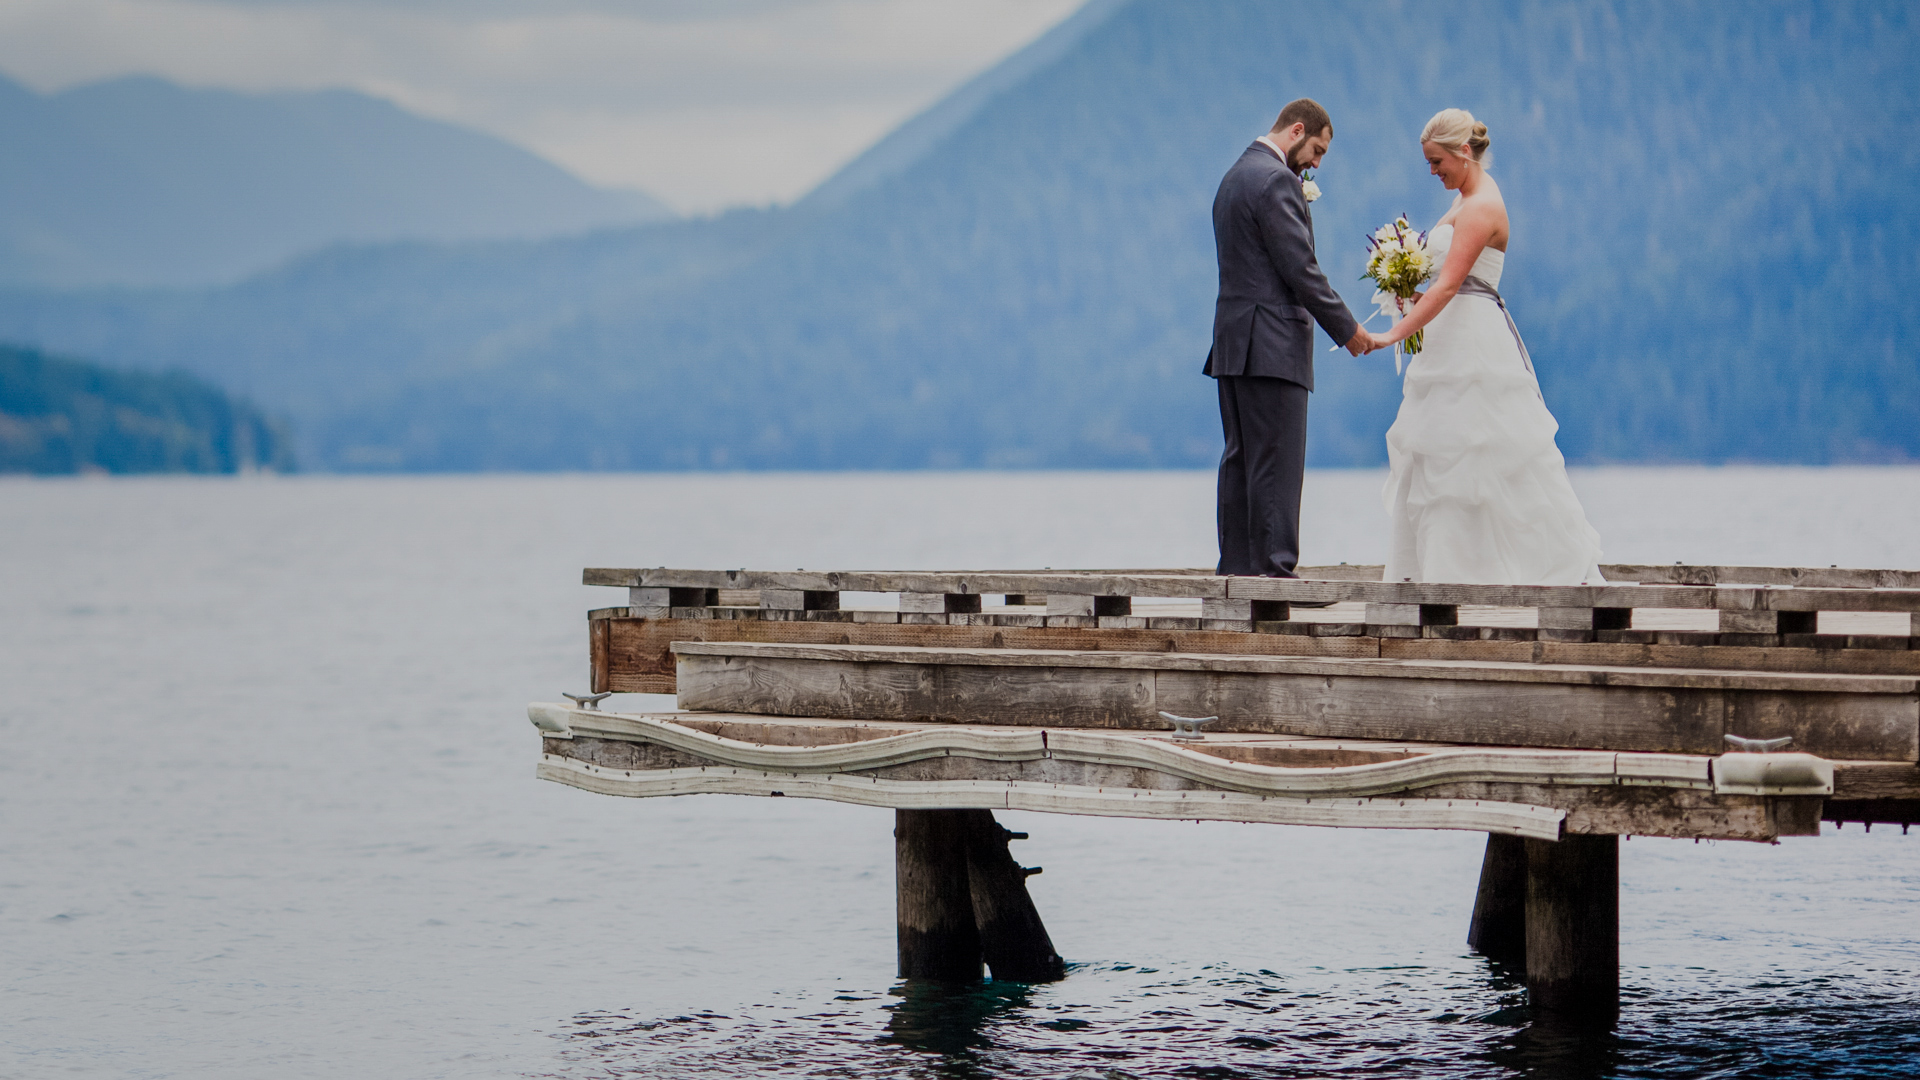 Check portfolios, pricing and availability for wedding photographers in Seattle